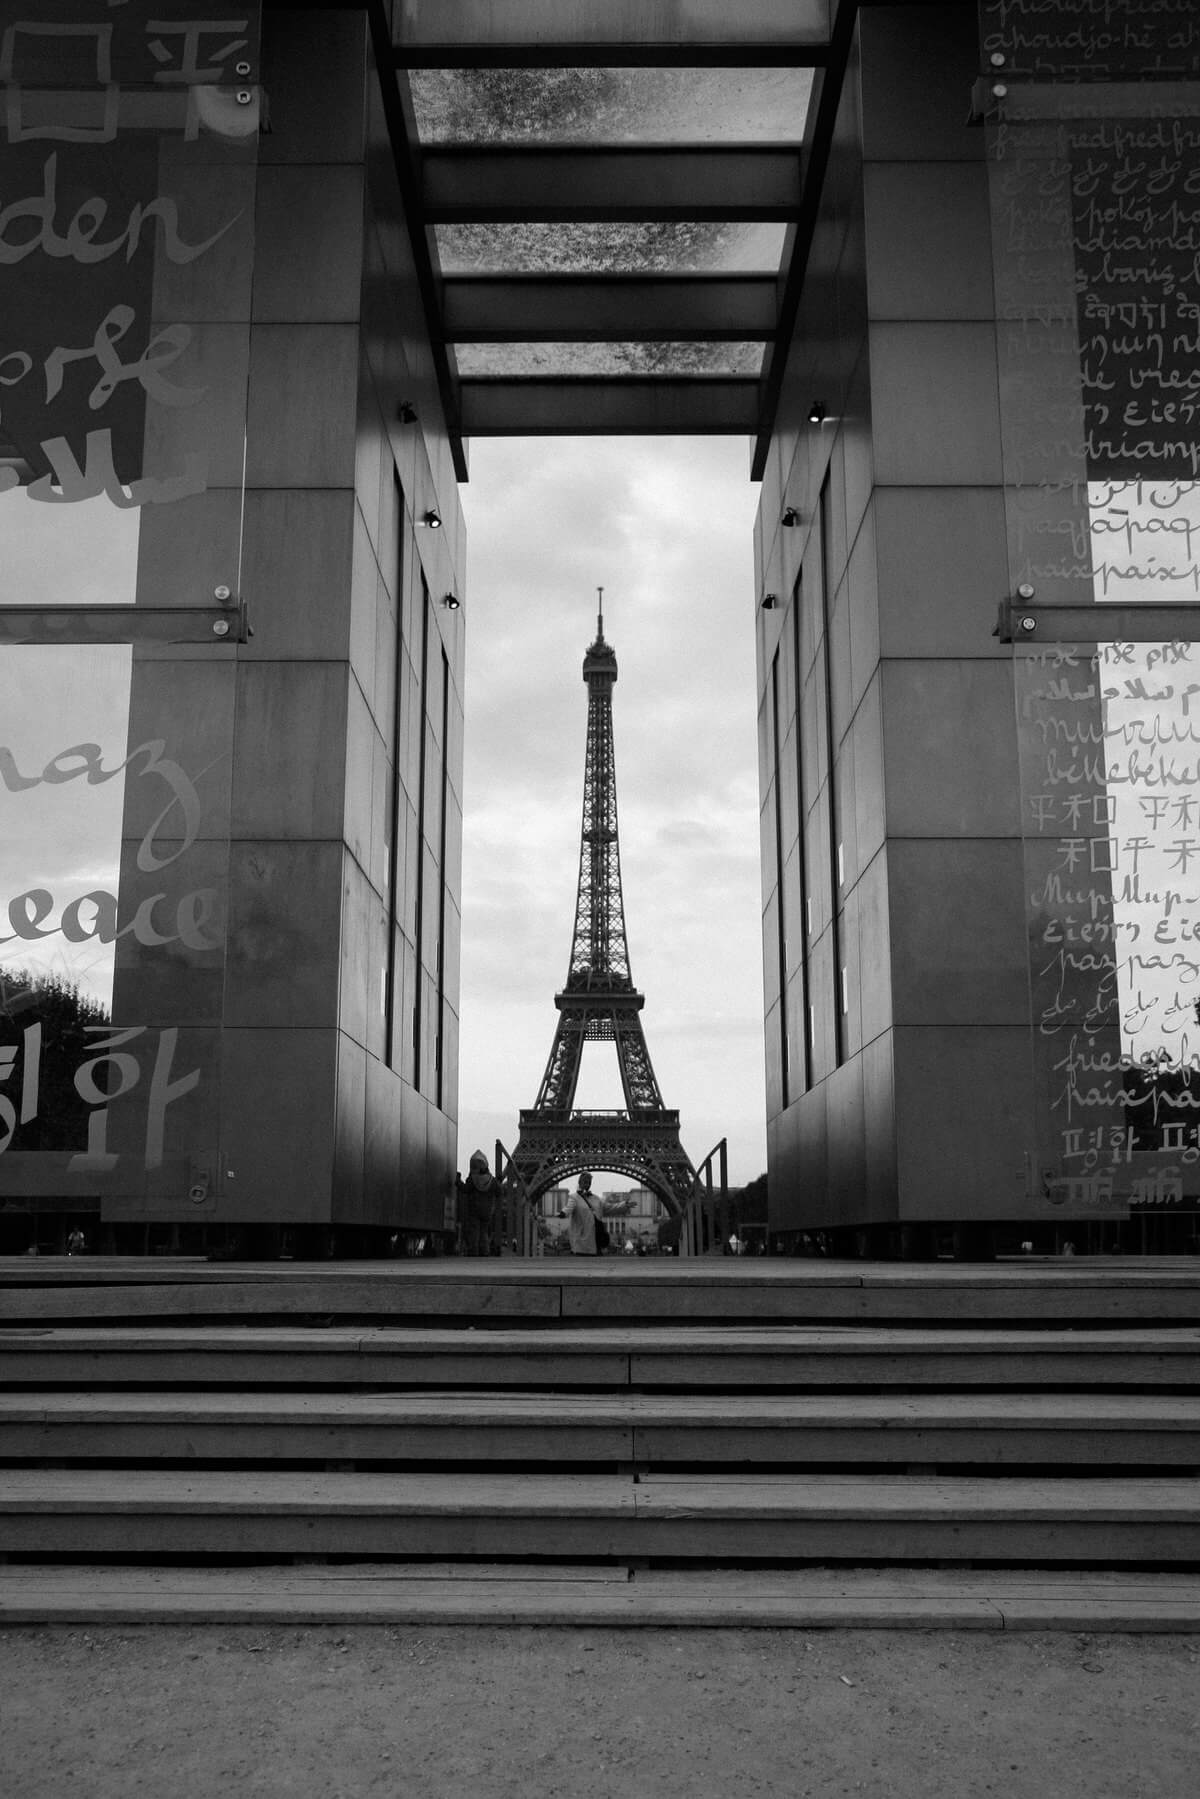 Paris-France-black-and-white-fine-art-photography-by-Studio-L-photographer-Laura-Schneider-_5142